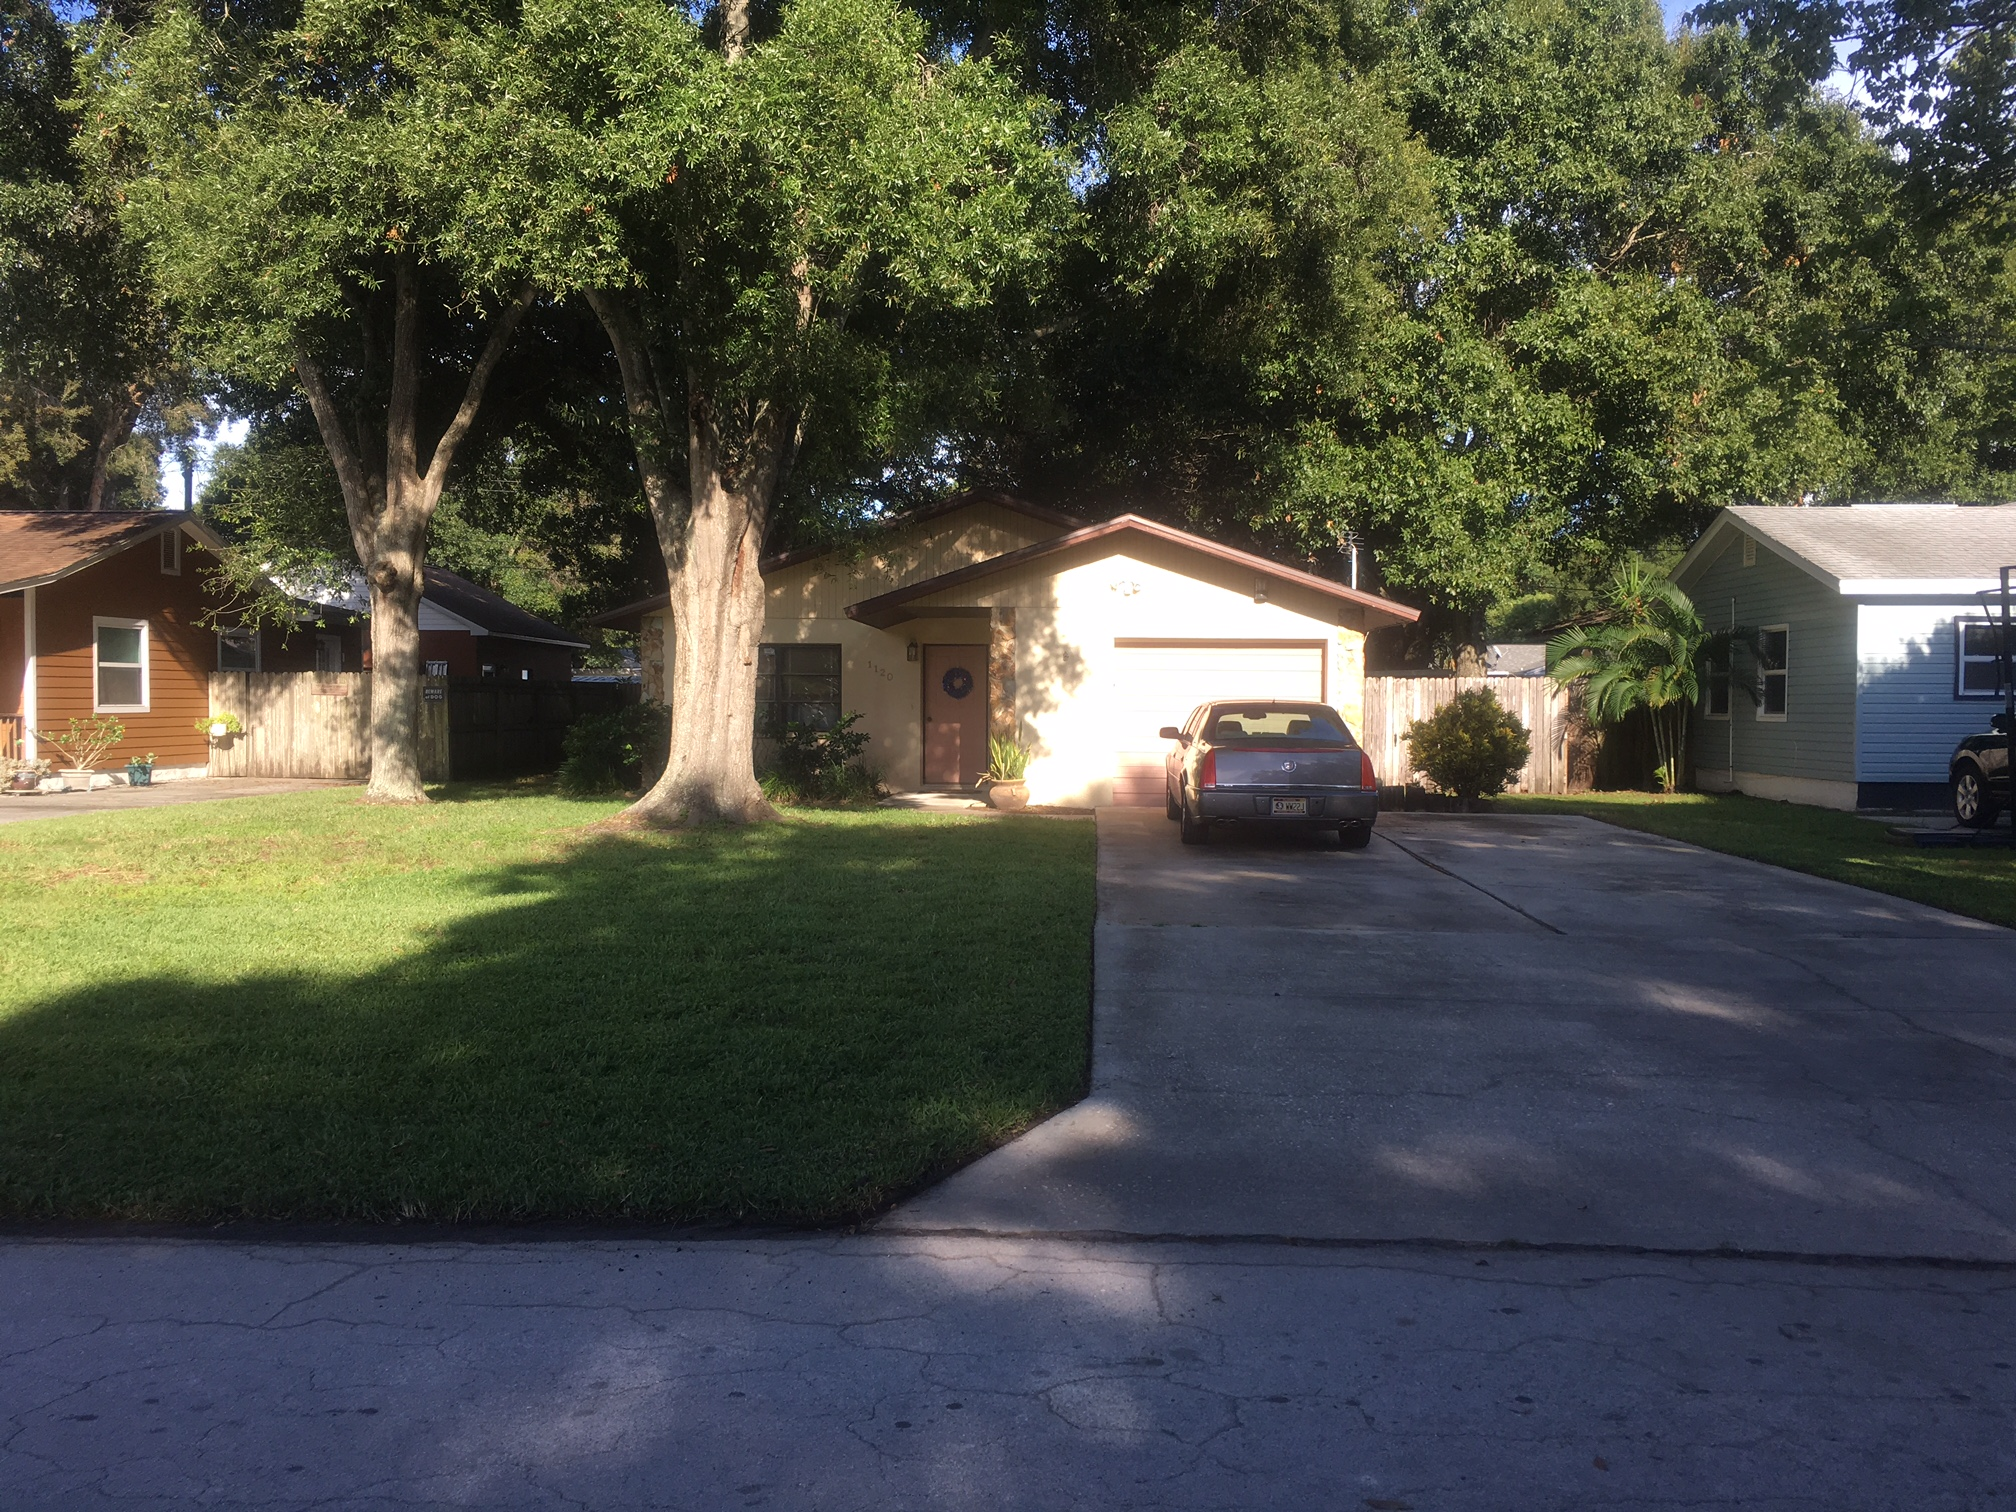 Lawn Mowing Contractor in Pinellas Park, FL, 33781